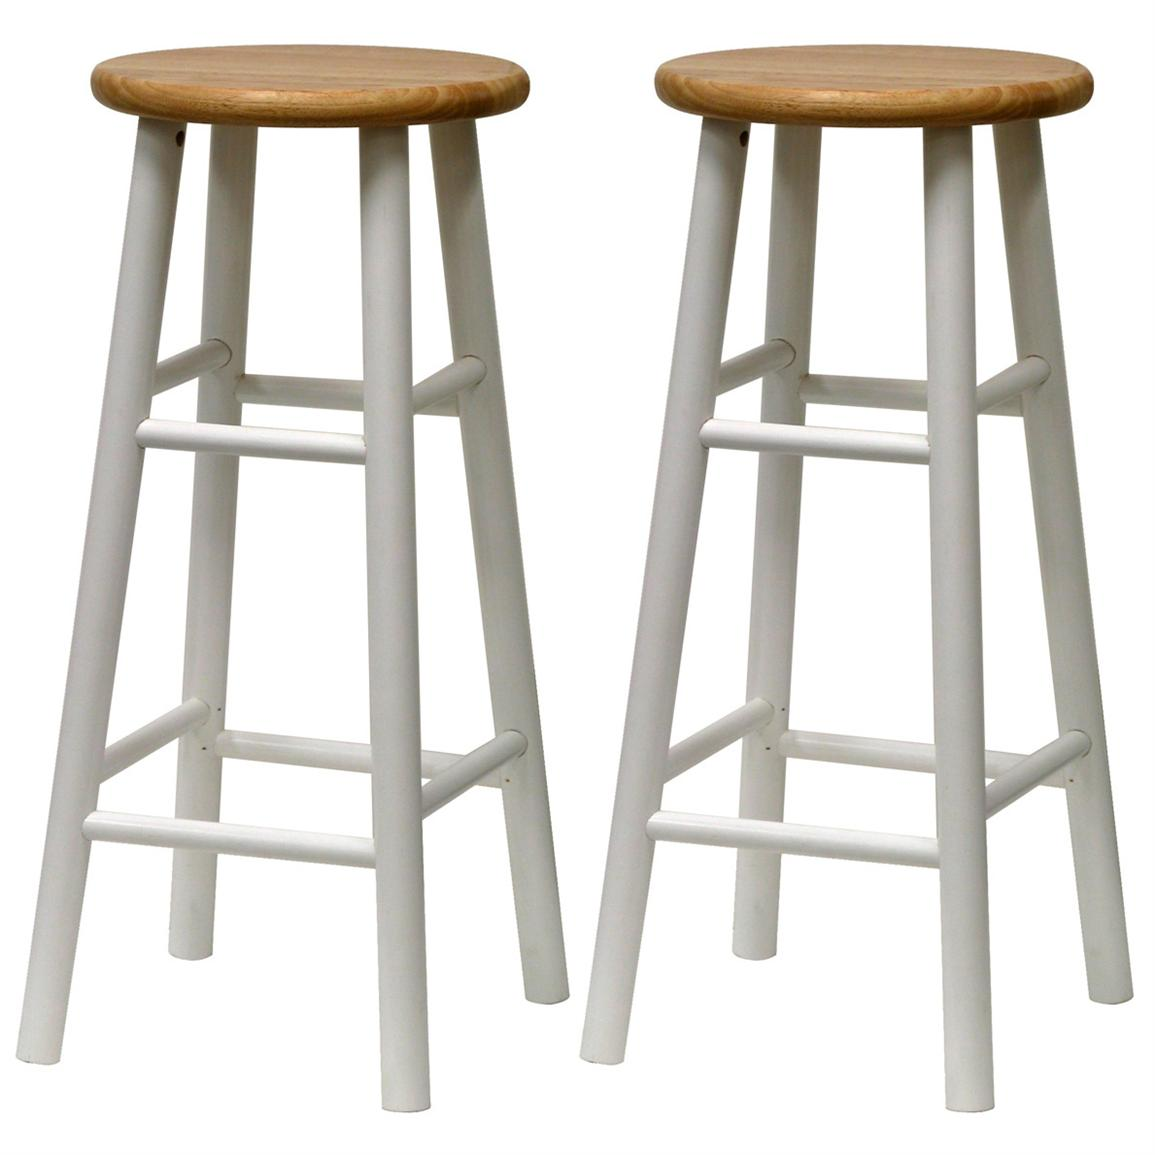 White Wood Bar Stools HomesFeed : Tall Round White Wood Bar Stools from homesfeed.com size 1155 x 1155 jpeg 73kB